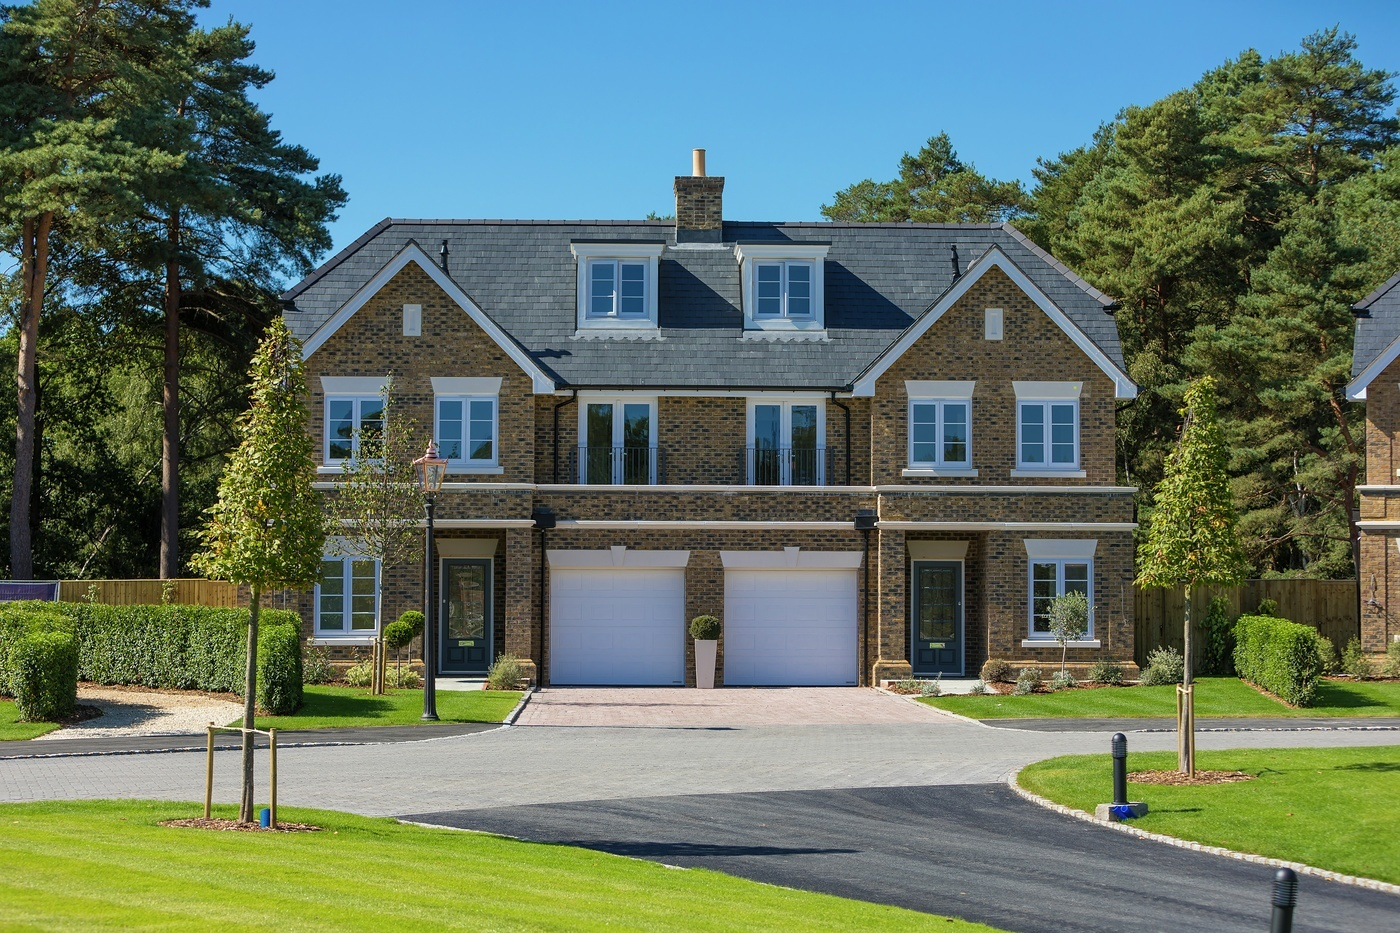 millgate-homes-ascot-our-work-developers-ascot-design-view2.jpg